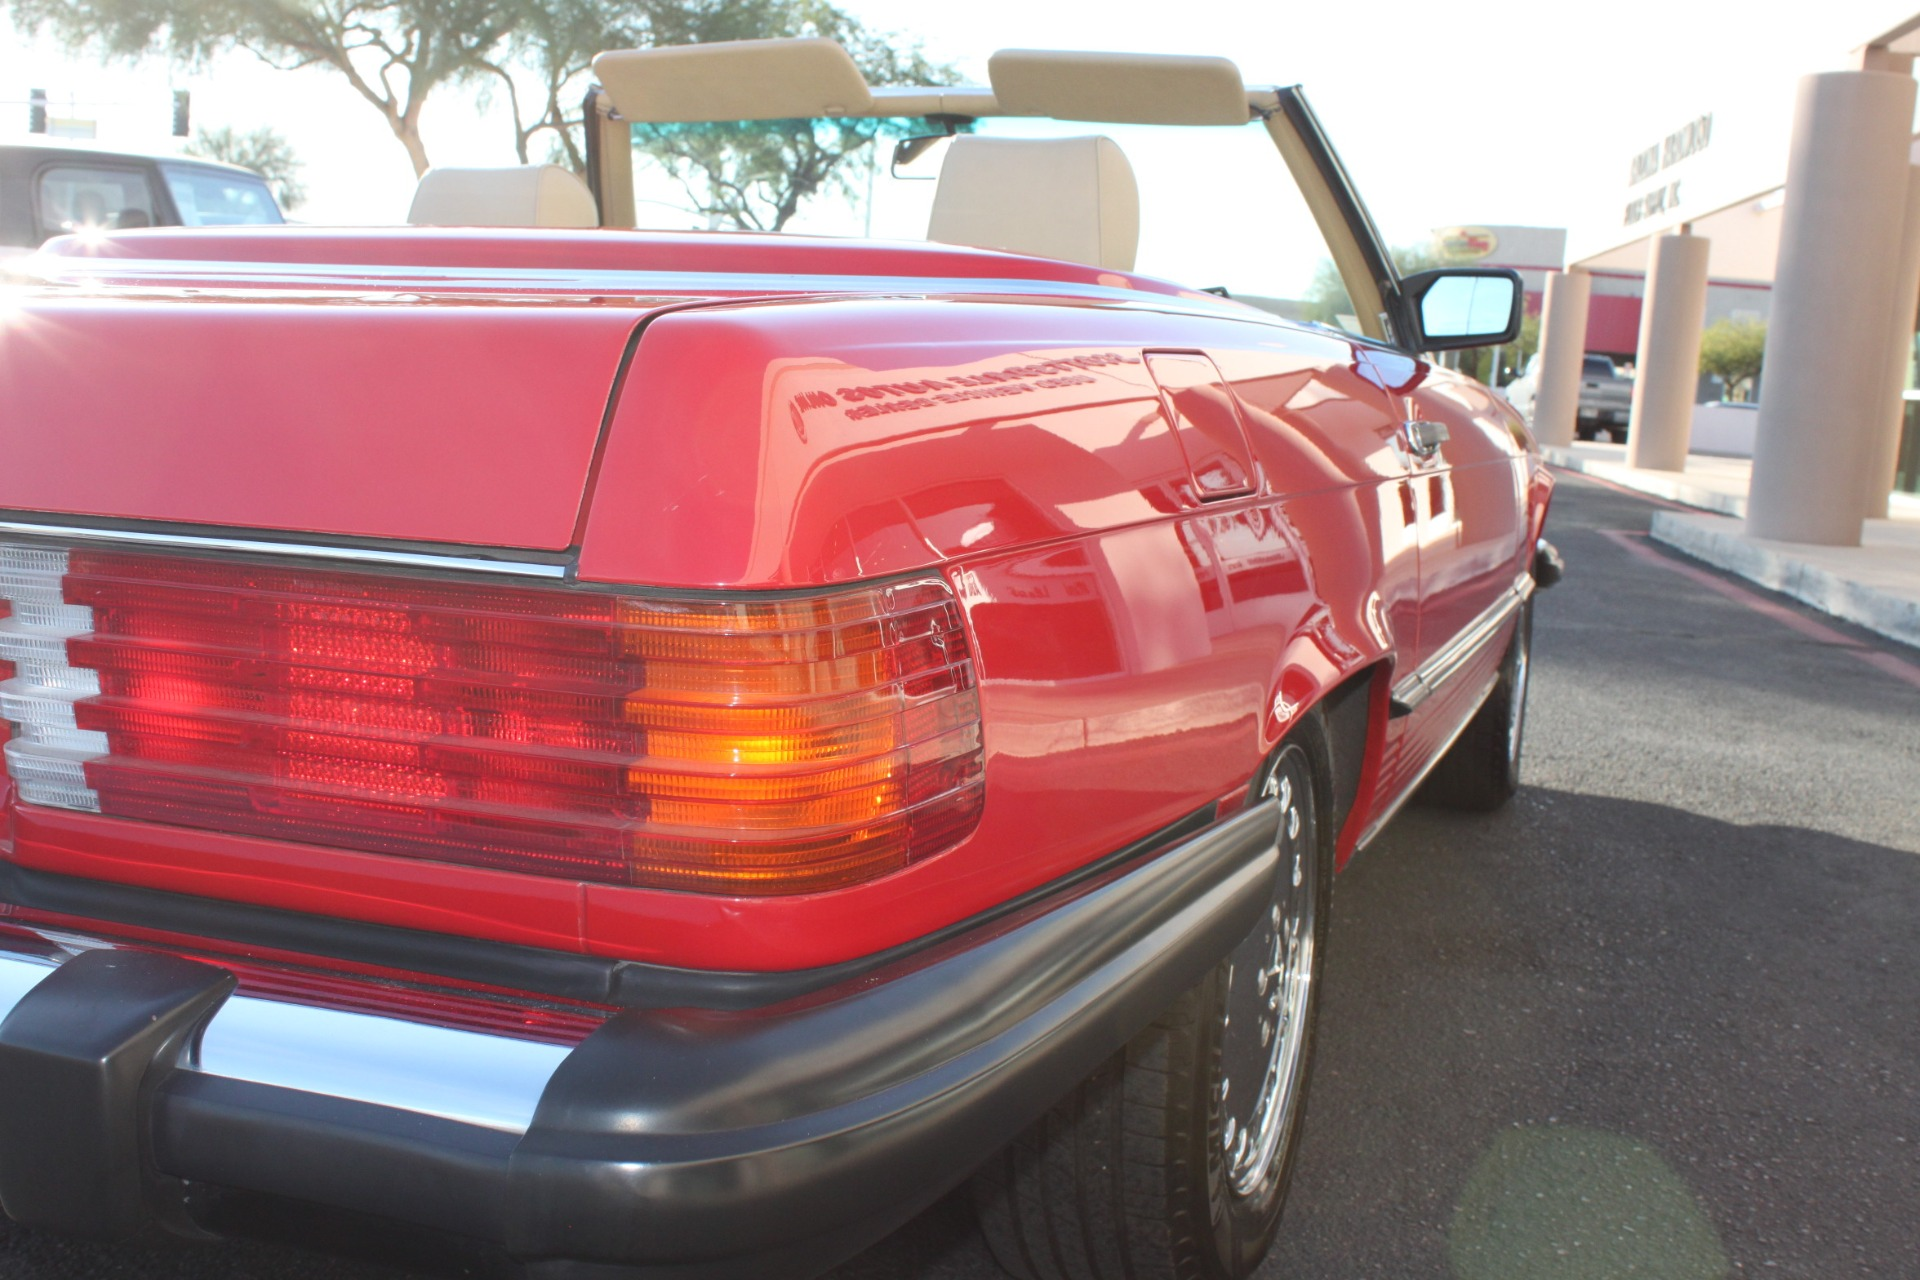 Used-1989-Mercedes-Benz-560-Series-560SL-Toyota